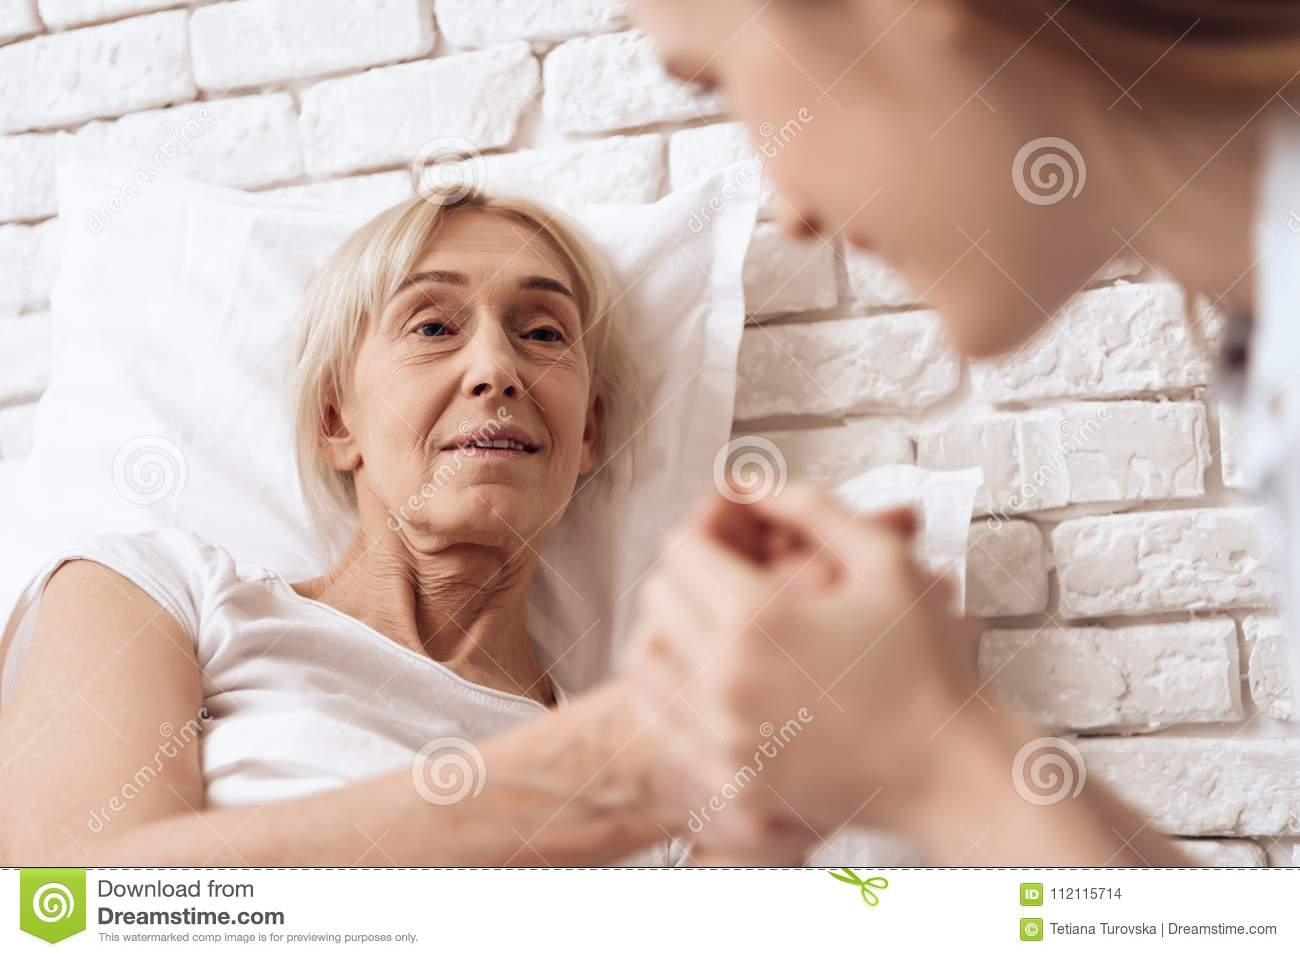 Girl is nursing elderly woman at home. They are holding hands, happy.